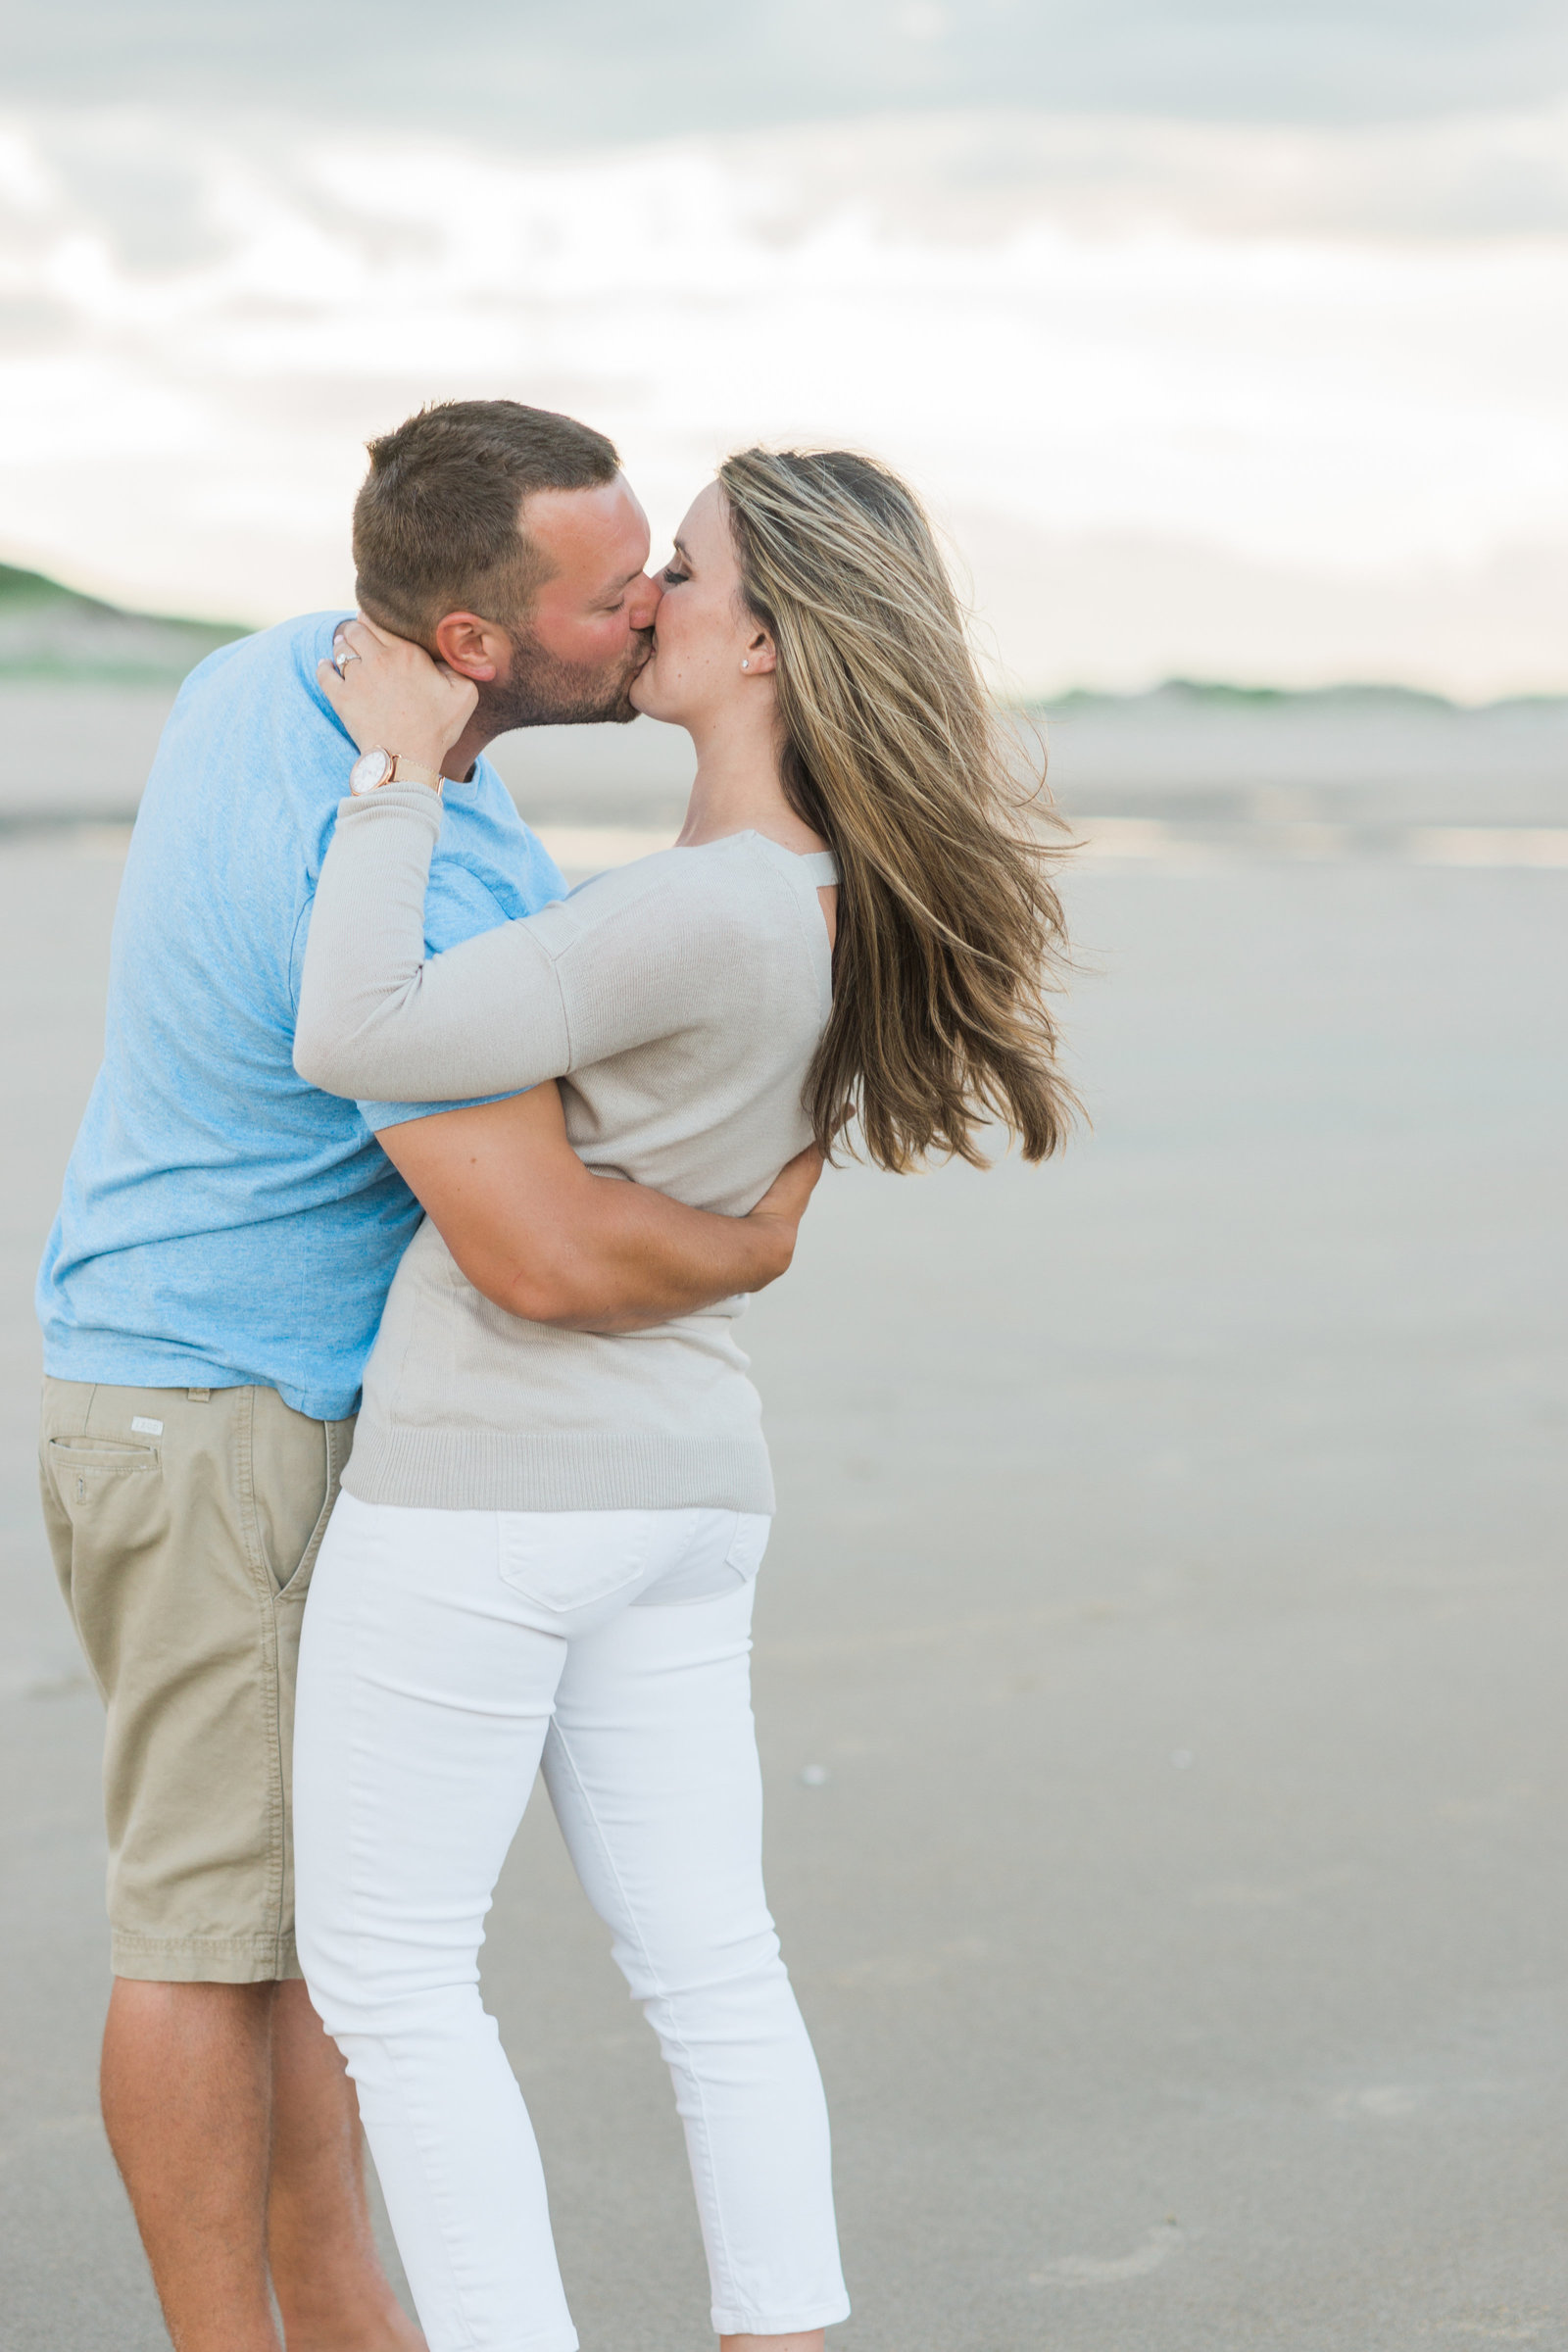 Newbury Photographs | Plum Island Engagement-123August 18, 2016